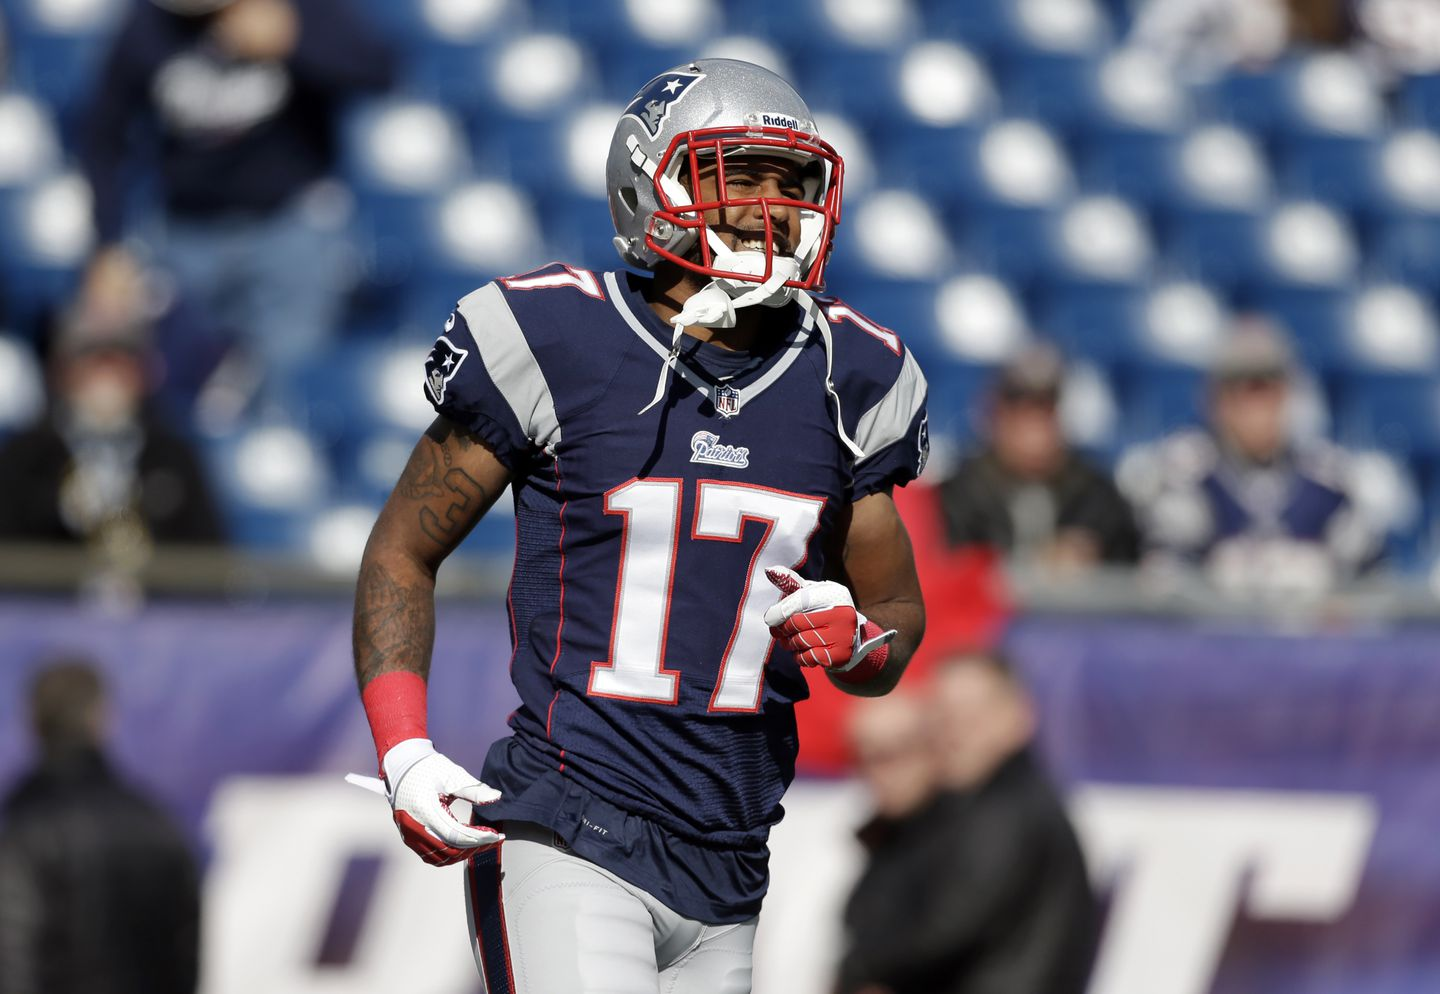 Aaron Dobson questionable for AFC Championship game - The Boston Globe